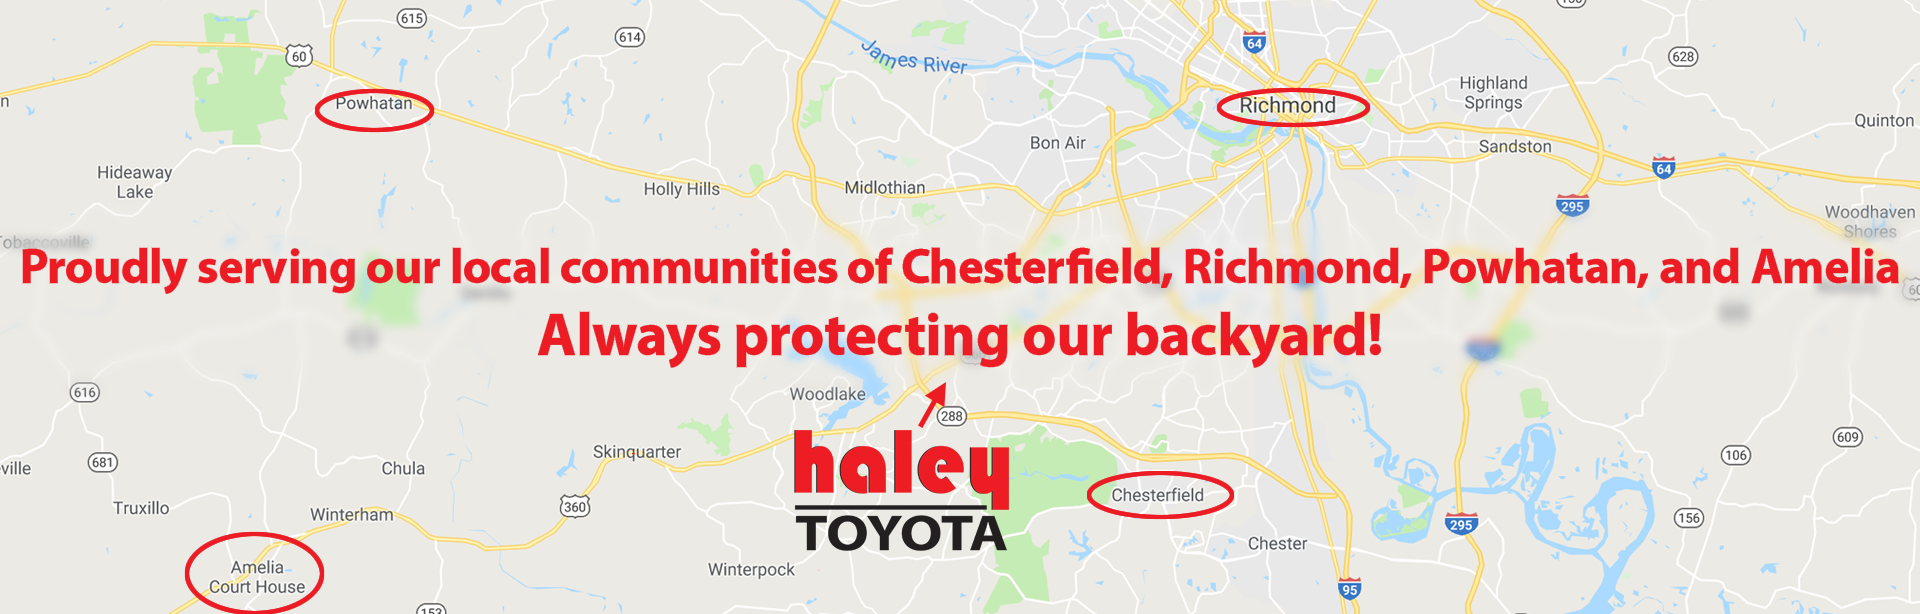 Haley Toyota, Location, Chesterfield, Richmond, Powhatan, Amelia, Toyota,  Dealership